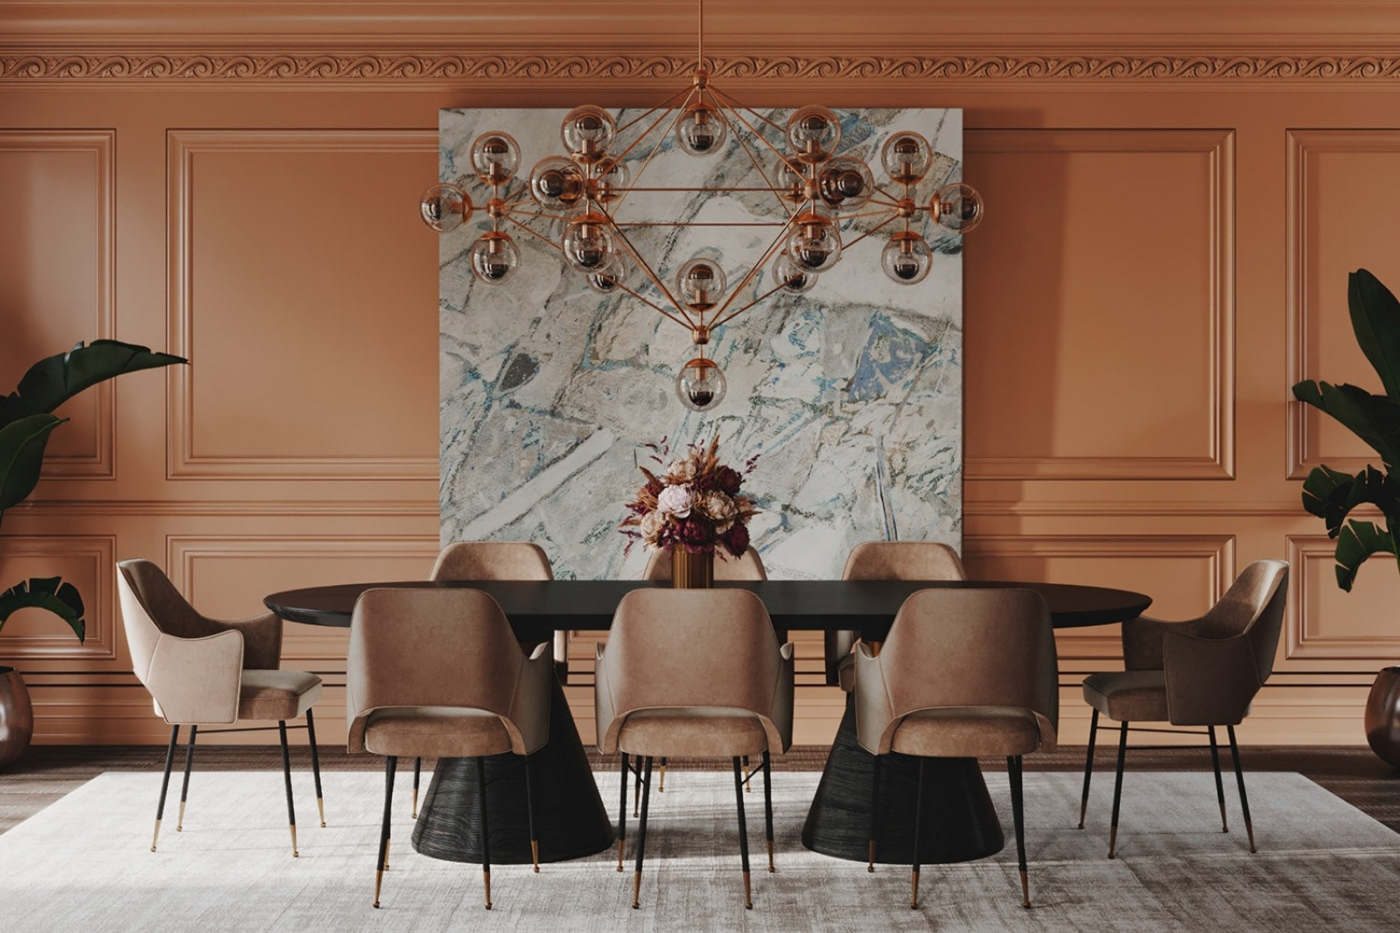 The Best Interior Design Projects To Discover In St Petersburg ft interior design project The Best Interior Design Projects To Discover In St Petersburg The Best Interior Design Projects To Discover In St Petersburg ft 1400x933